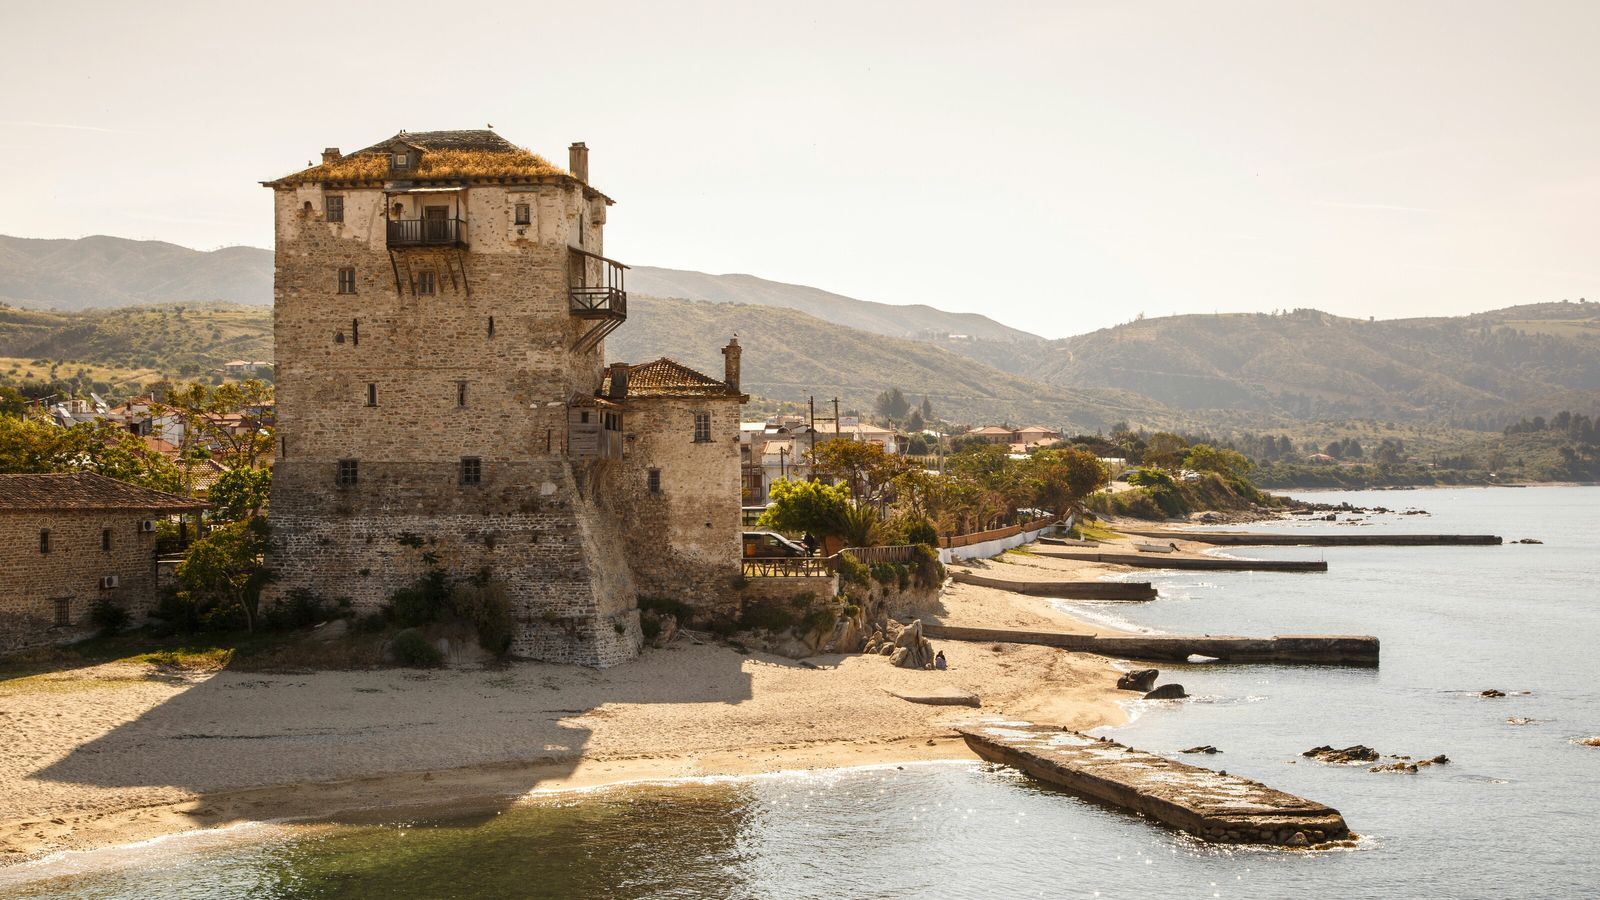 The fortified tower at Ouranoupoli in Athos, one of the three peninsulas in the Halkidiki region.